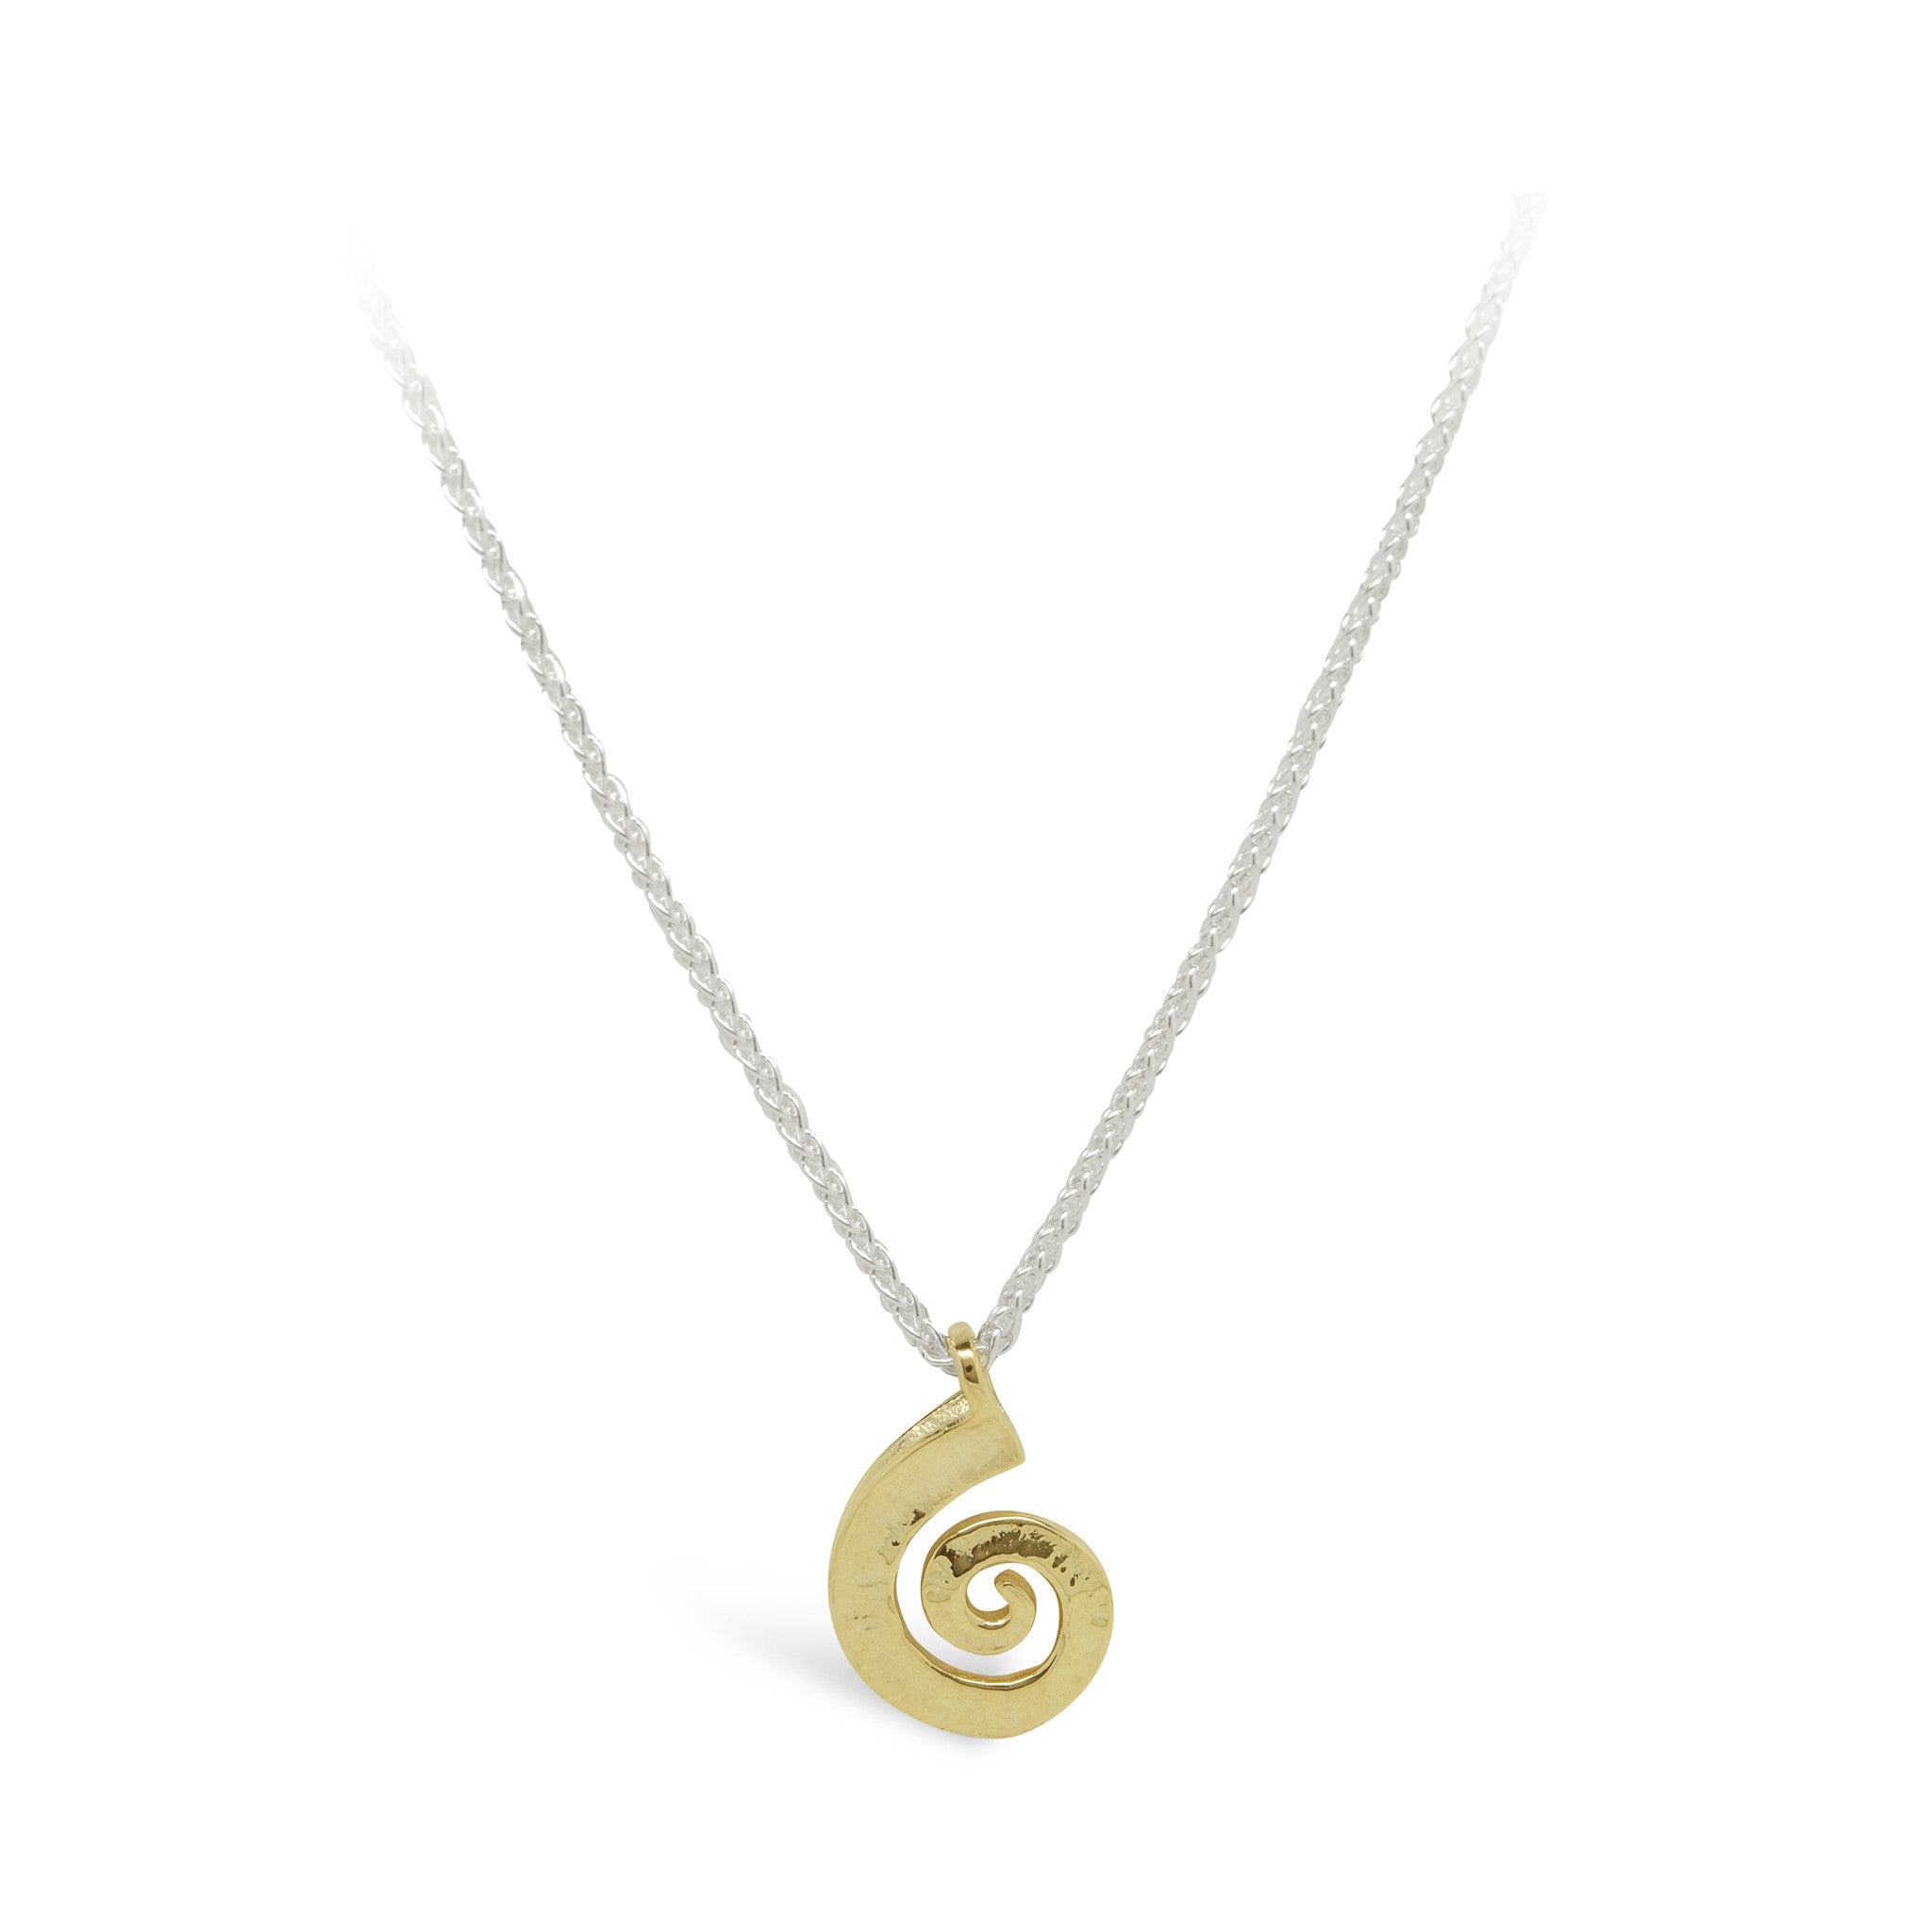 spiral better pendant index whimsy steel product stainless gift necklace shop